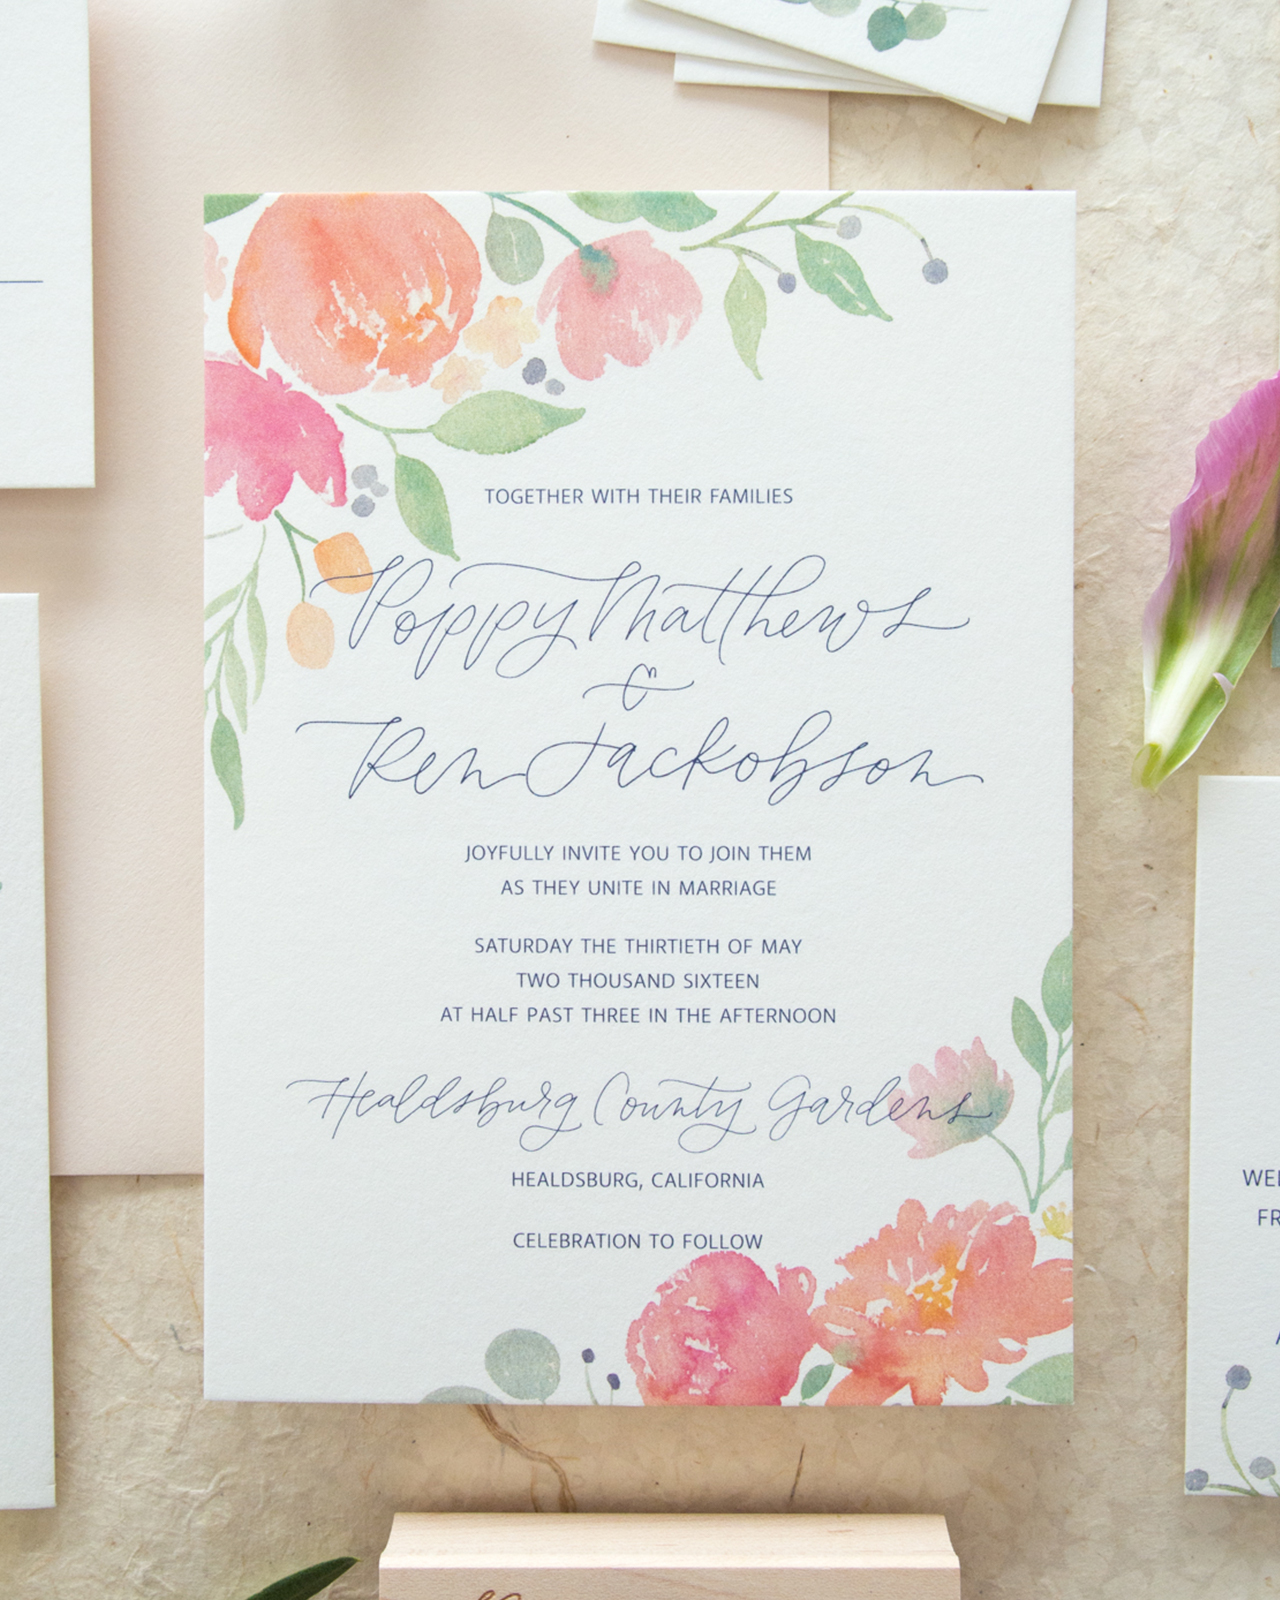 Whimsical Poppy And Eucalyptus Watercolor Wedding Invitations By Bright Room Studio